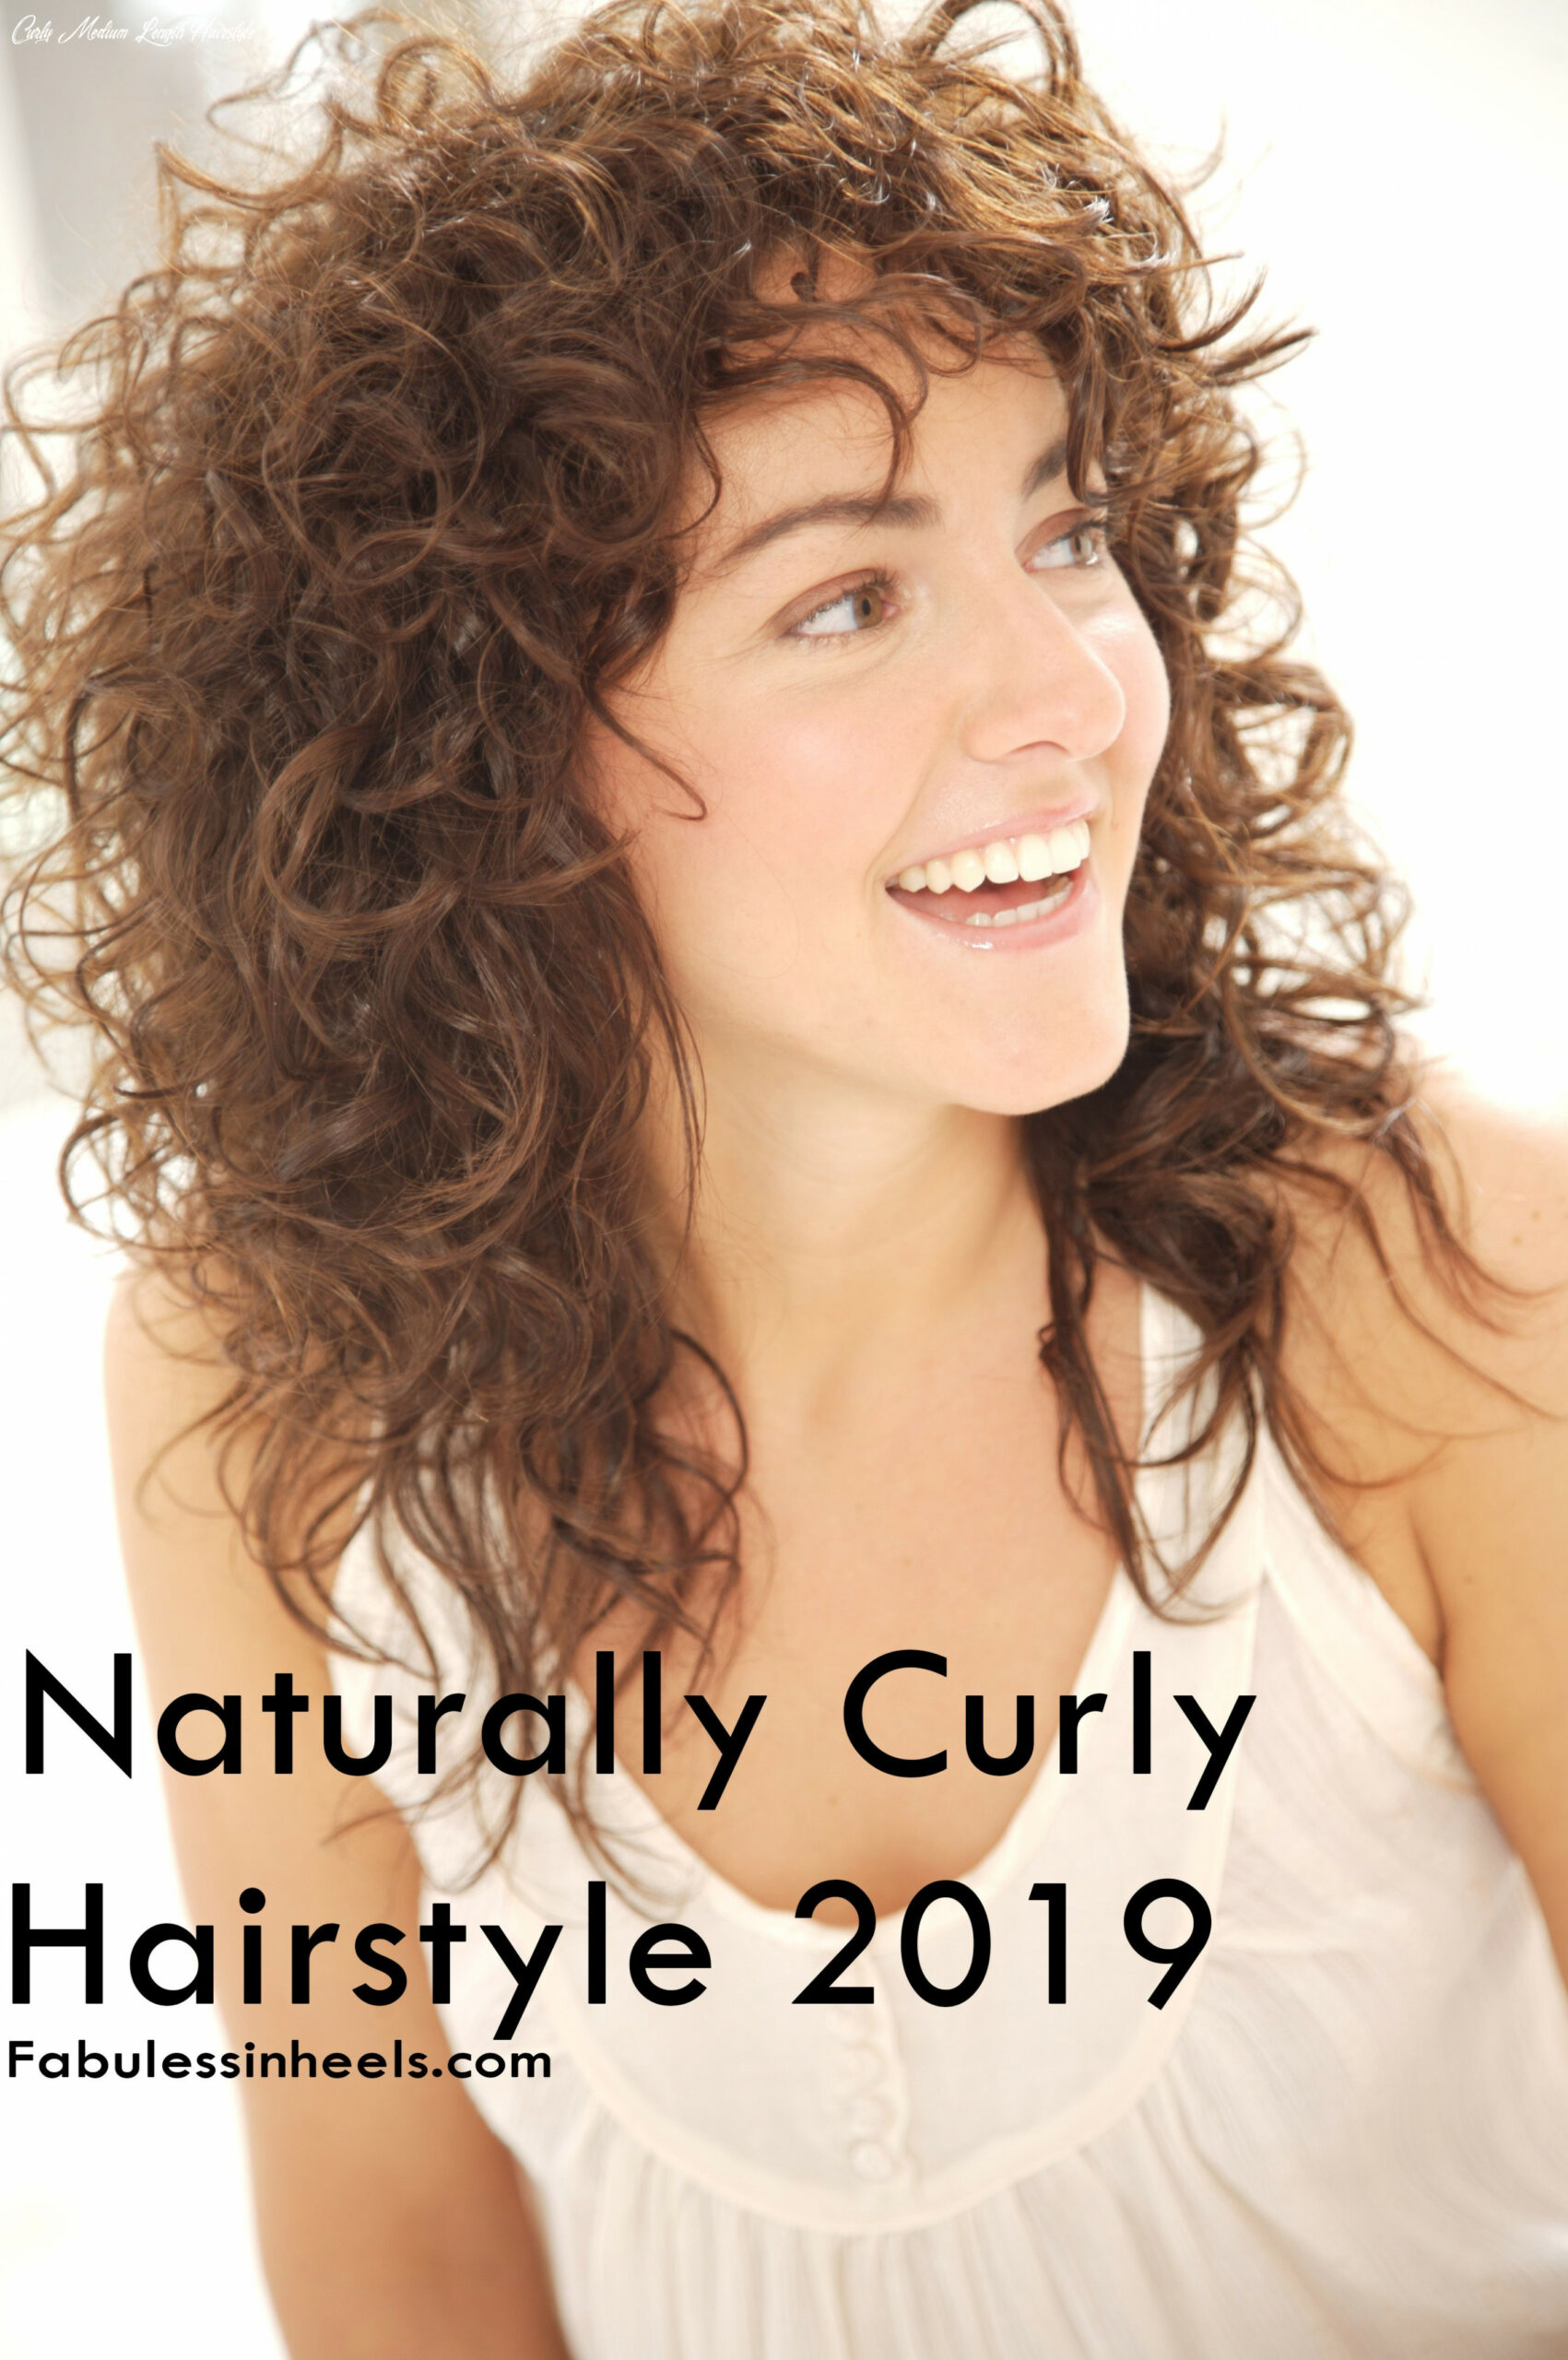 Naturally curly hair 8 for womens with medium length #hairstyle